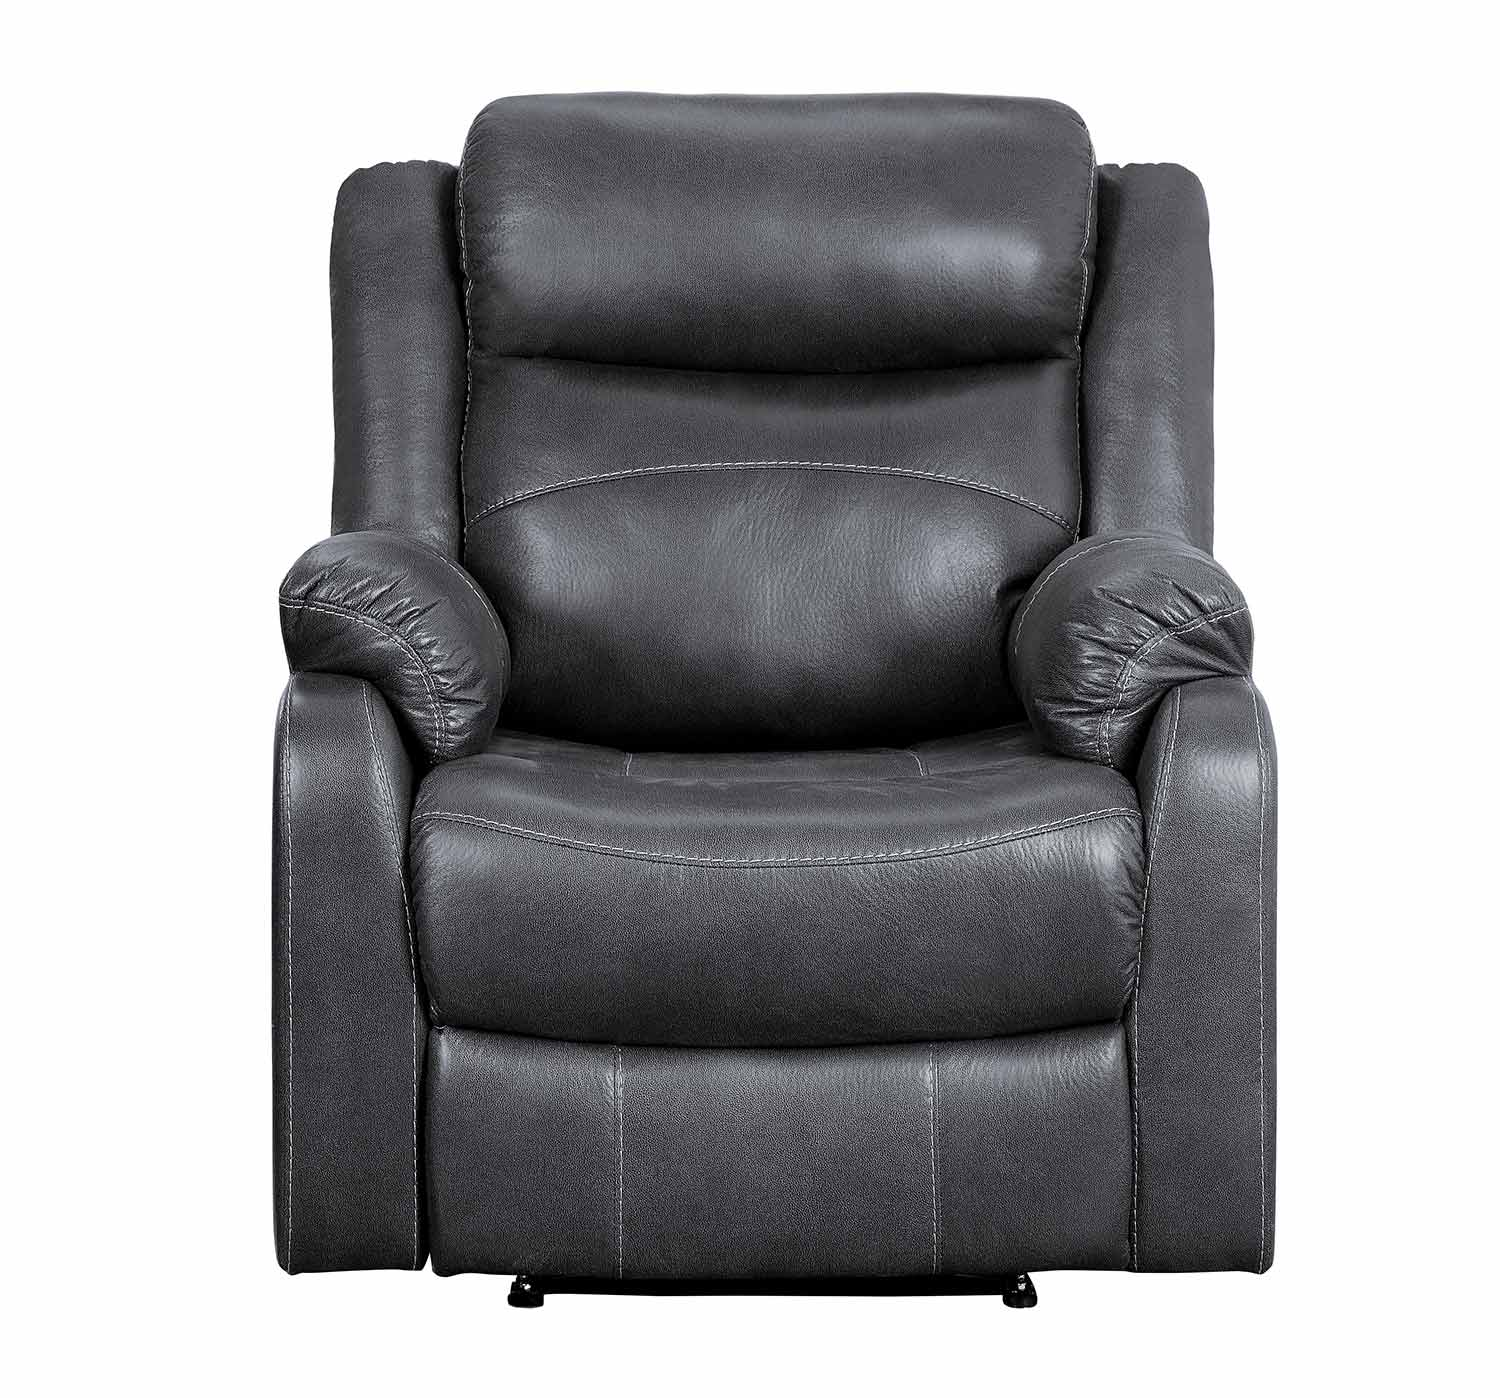 Homelegance Yerba Lay Flat Reclining Chair - Dark Gray